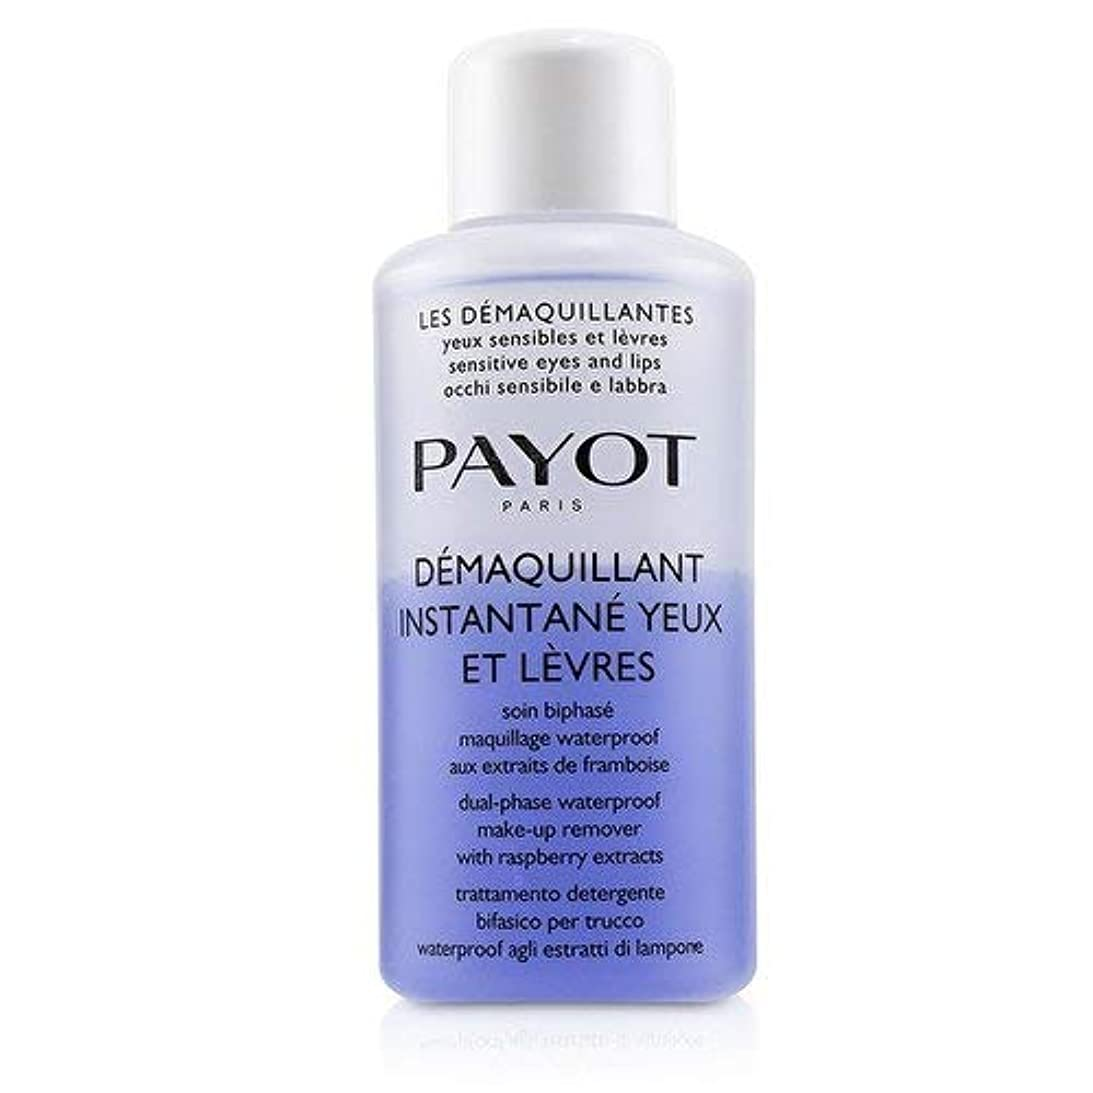 一貫した人差し指家事をするパイヨ Les Demaquillantes Demaquillant Instantane Yeux Dual-Phase Waterproof Make-Up Remover - For Sensitive Eyes...